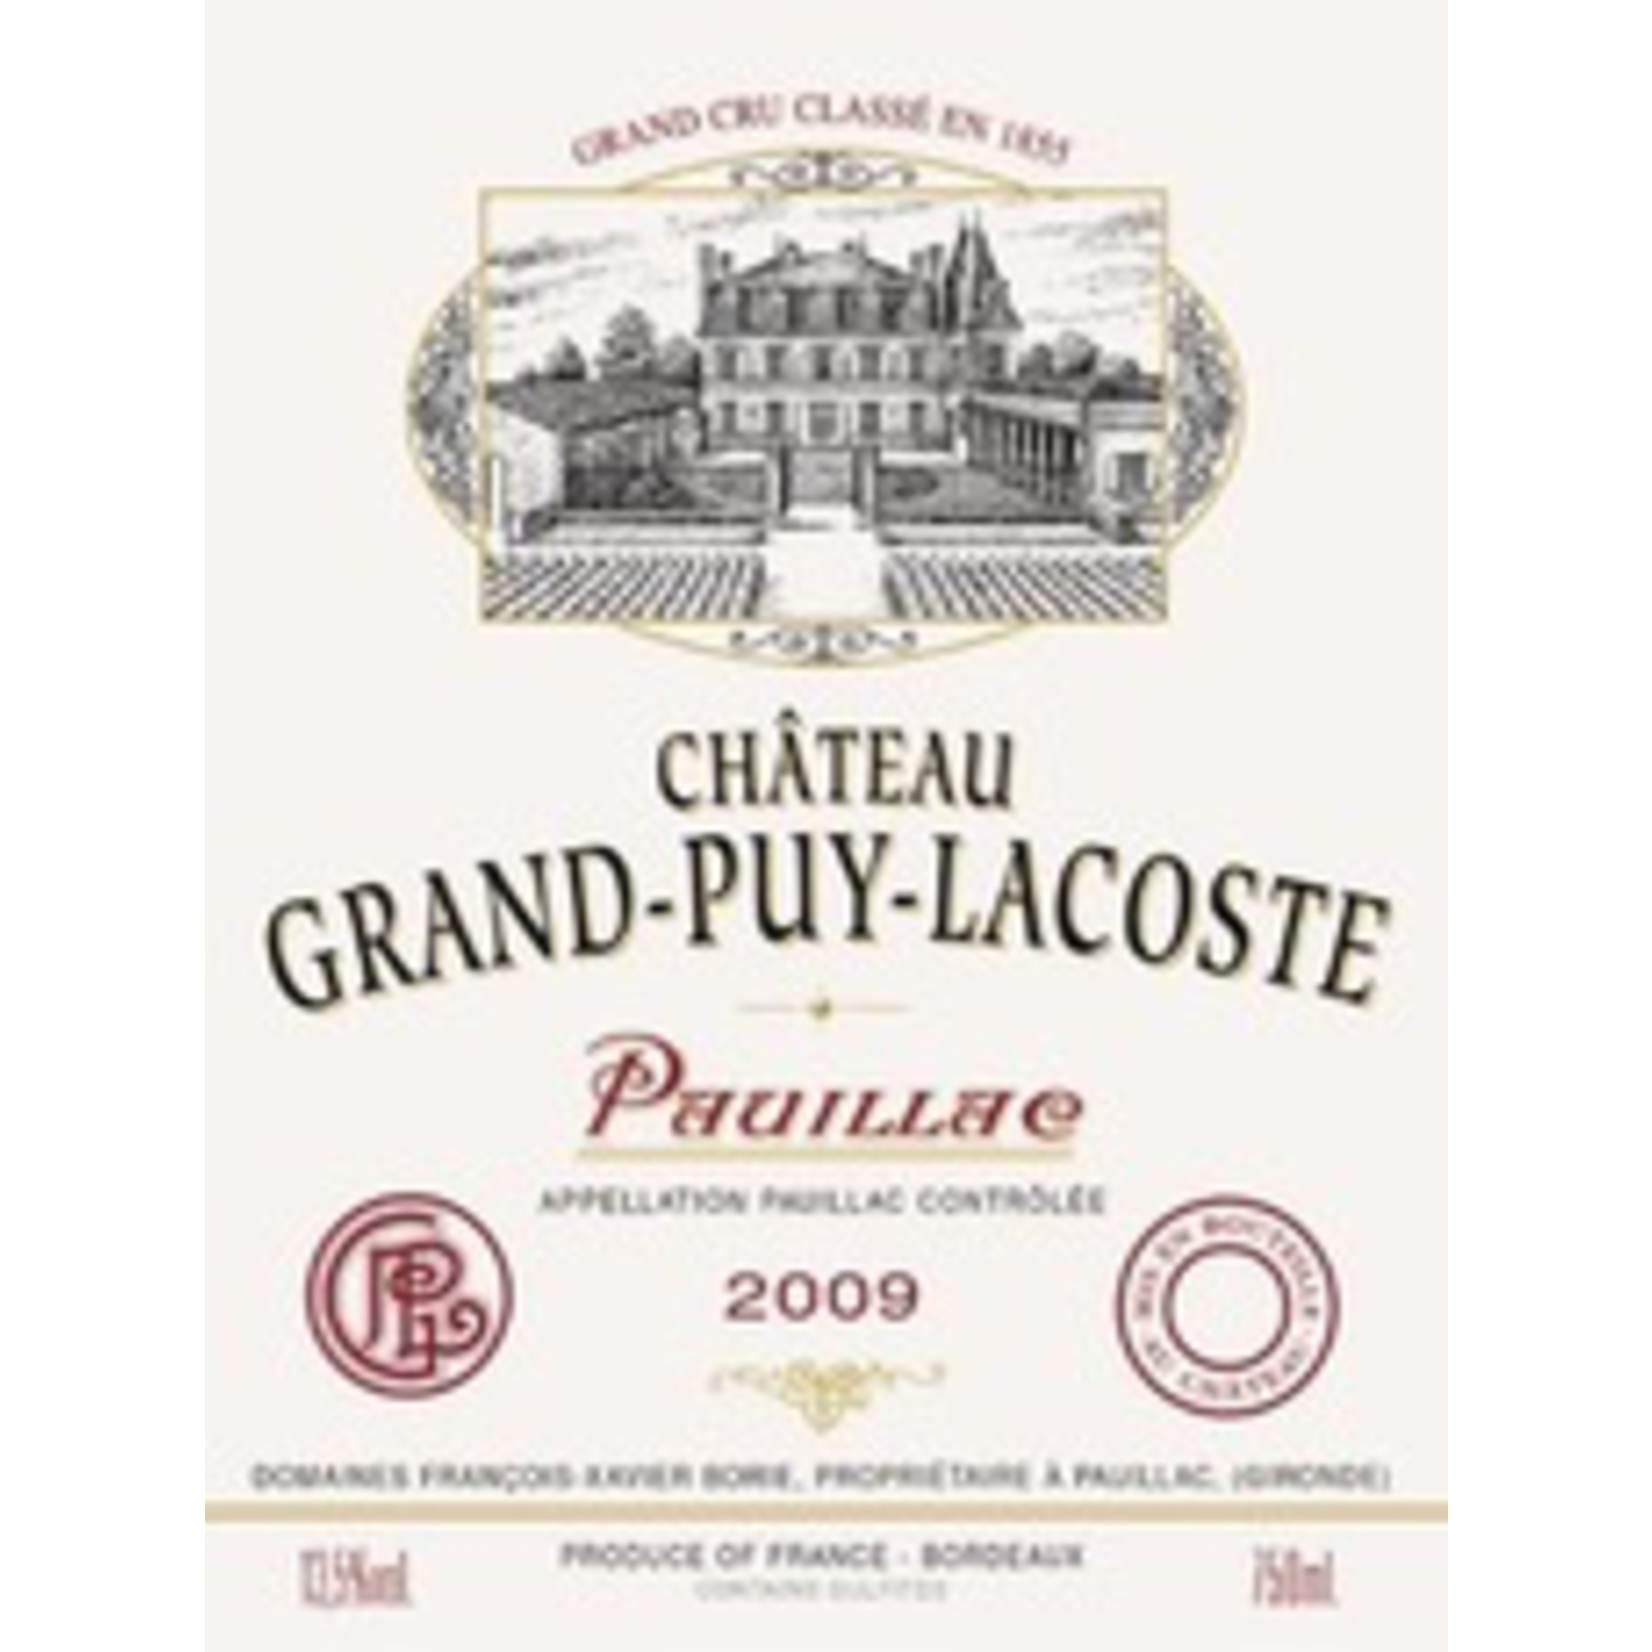 Wine Chateau Grand Puy Lacoste 2009